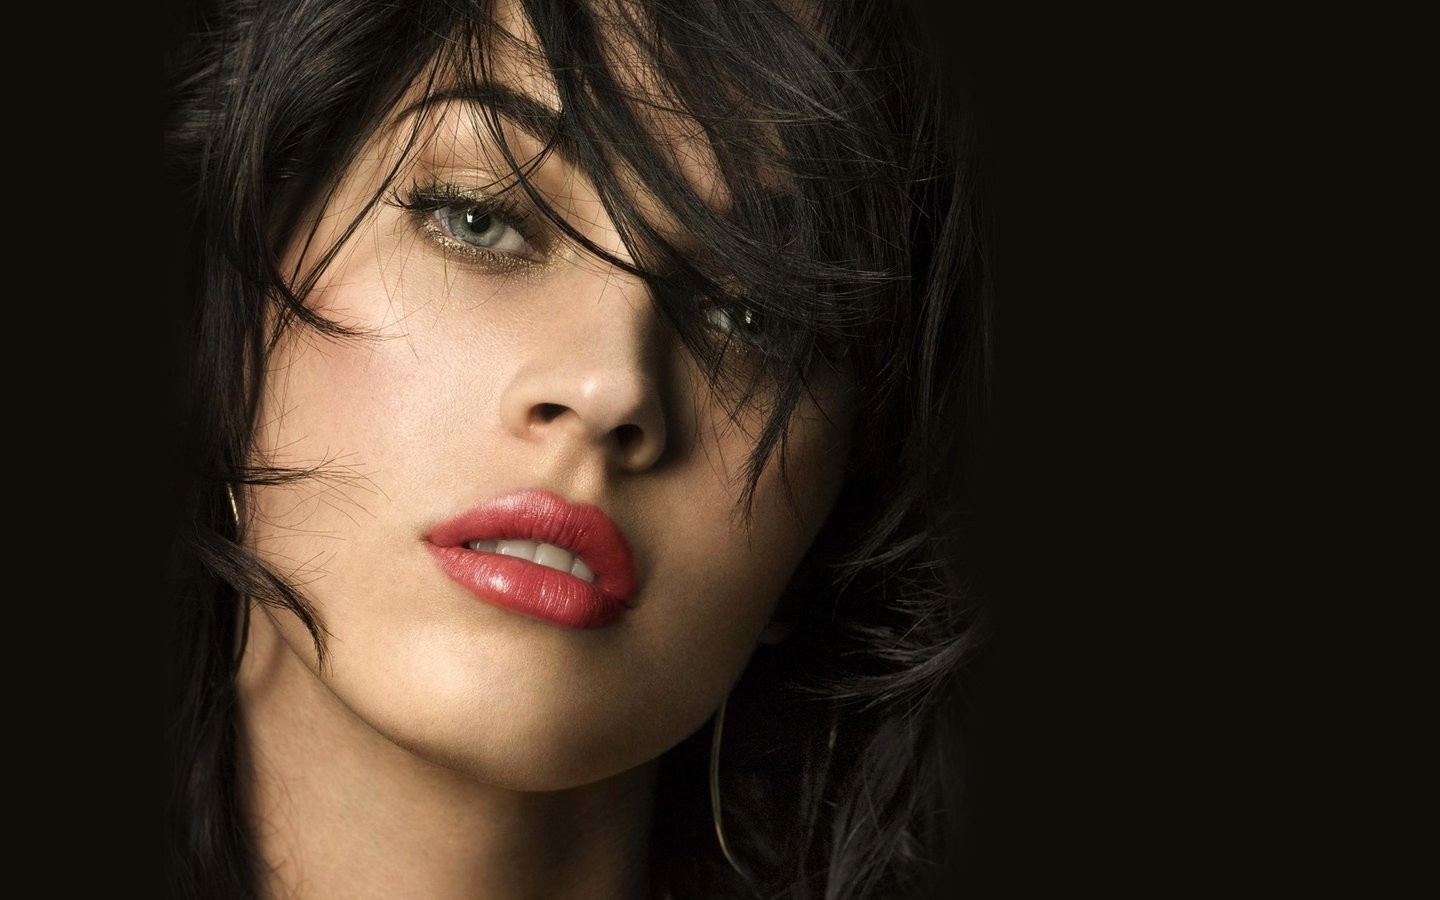 woman Celebrity Megan Fox Actress brunettes HD Wallpaper